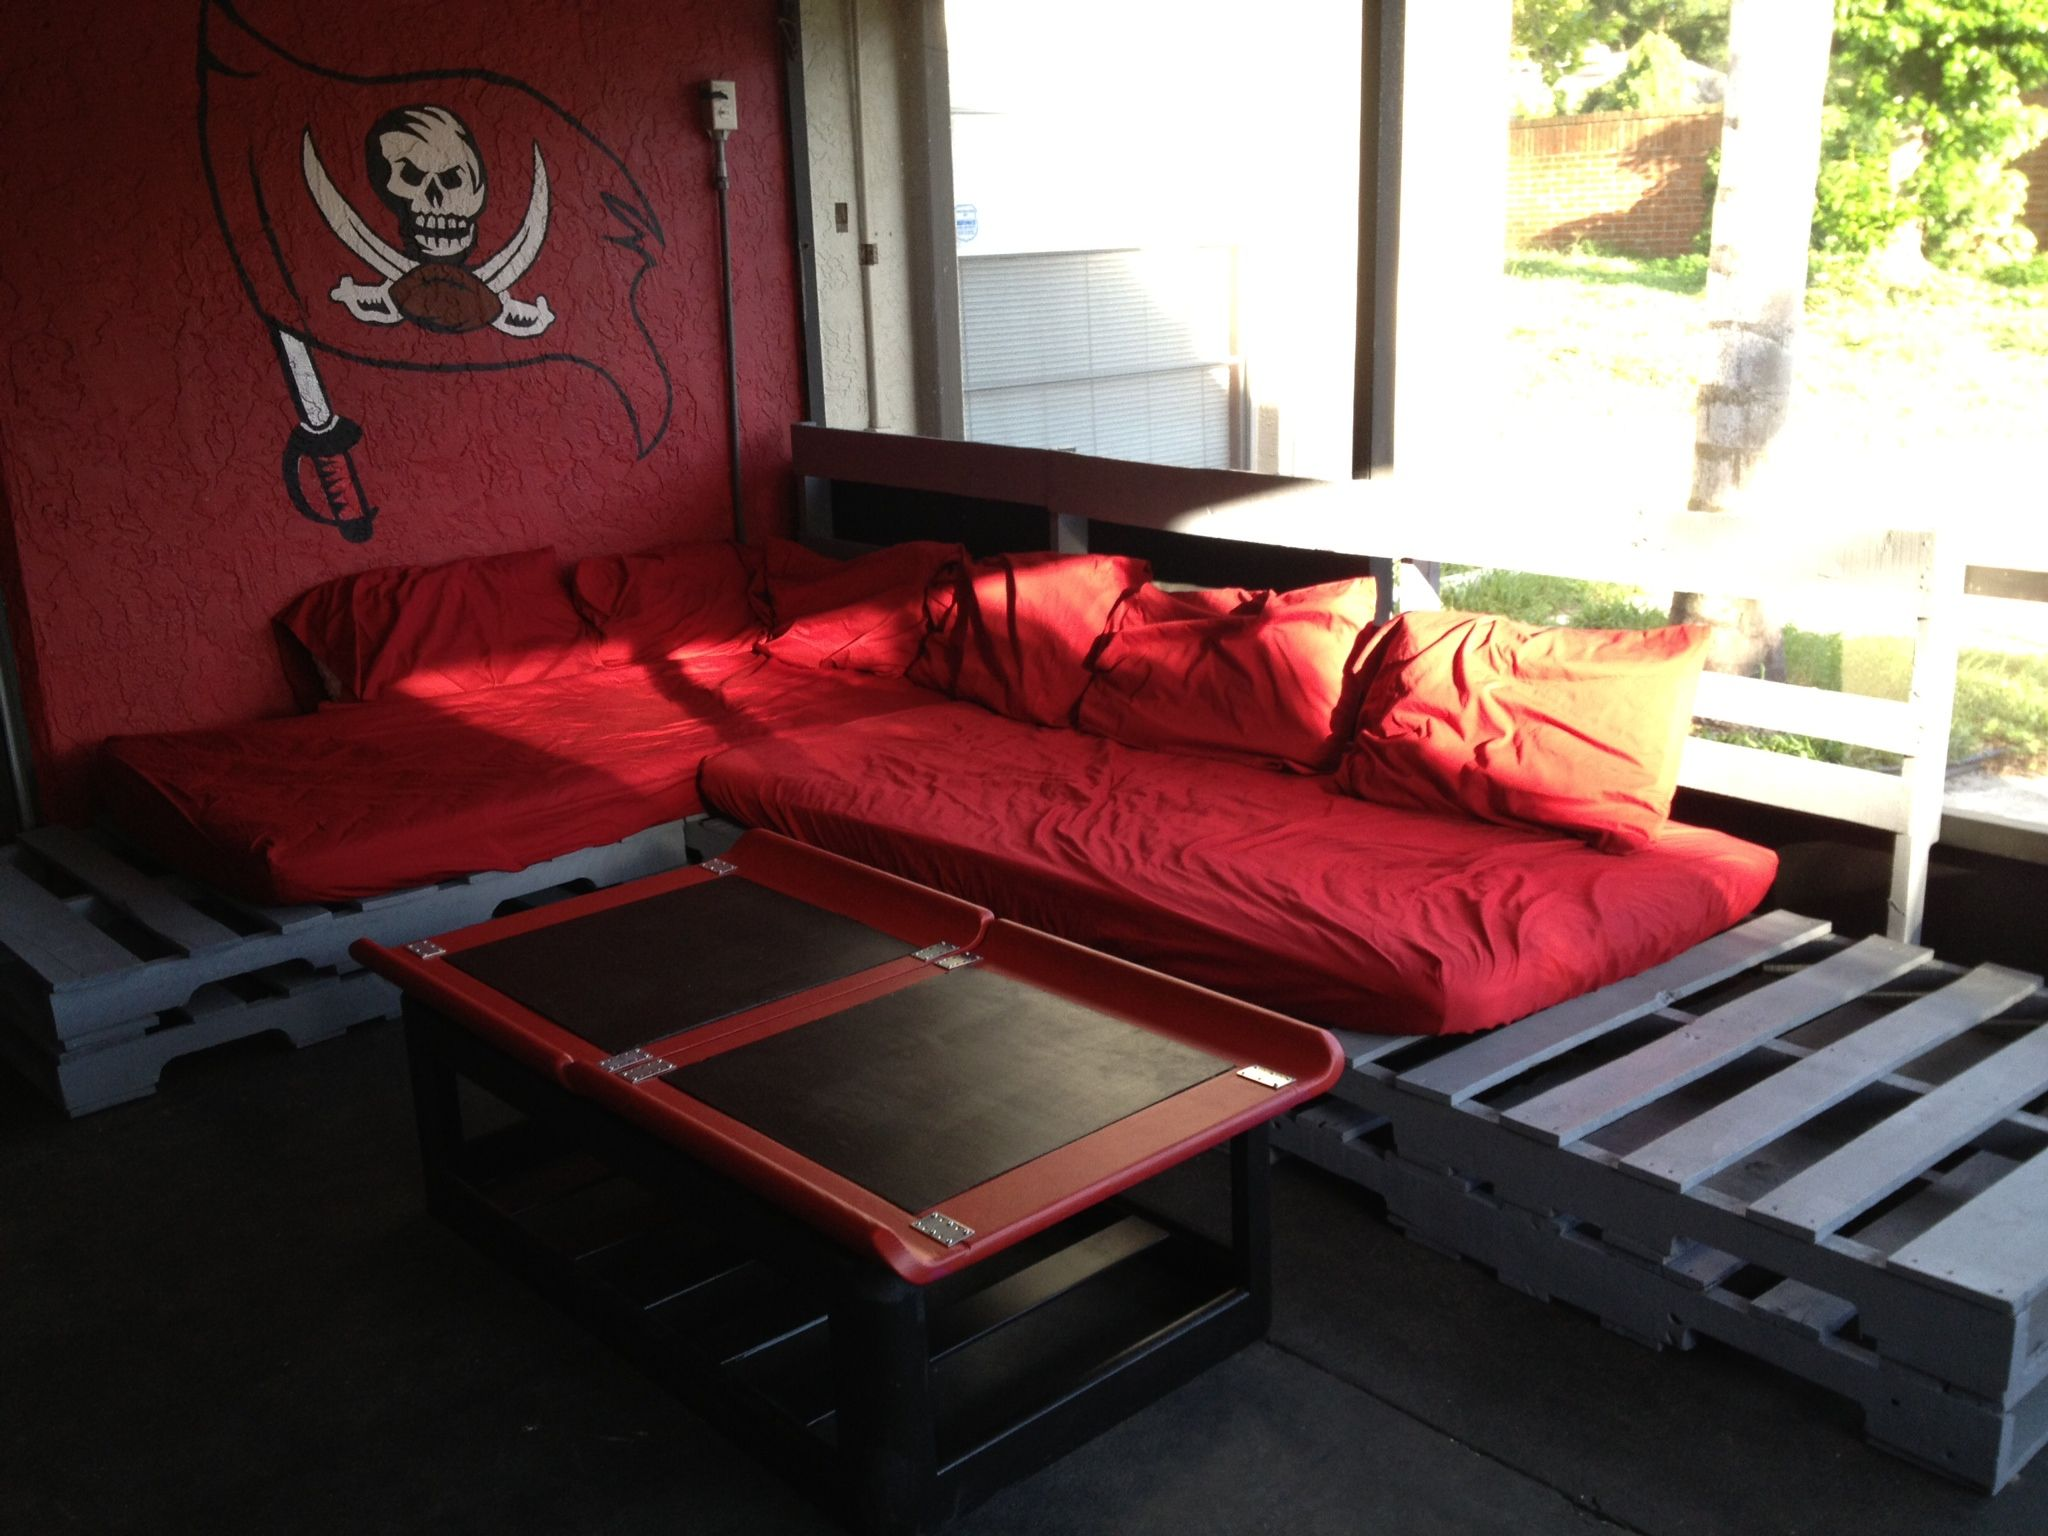 Recycled wood pallet L shaped couch on my Buccaneers themed porch